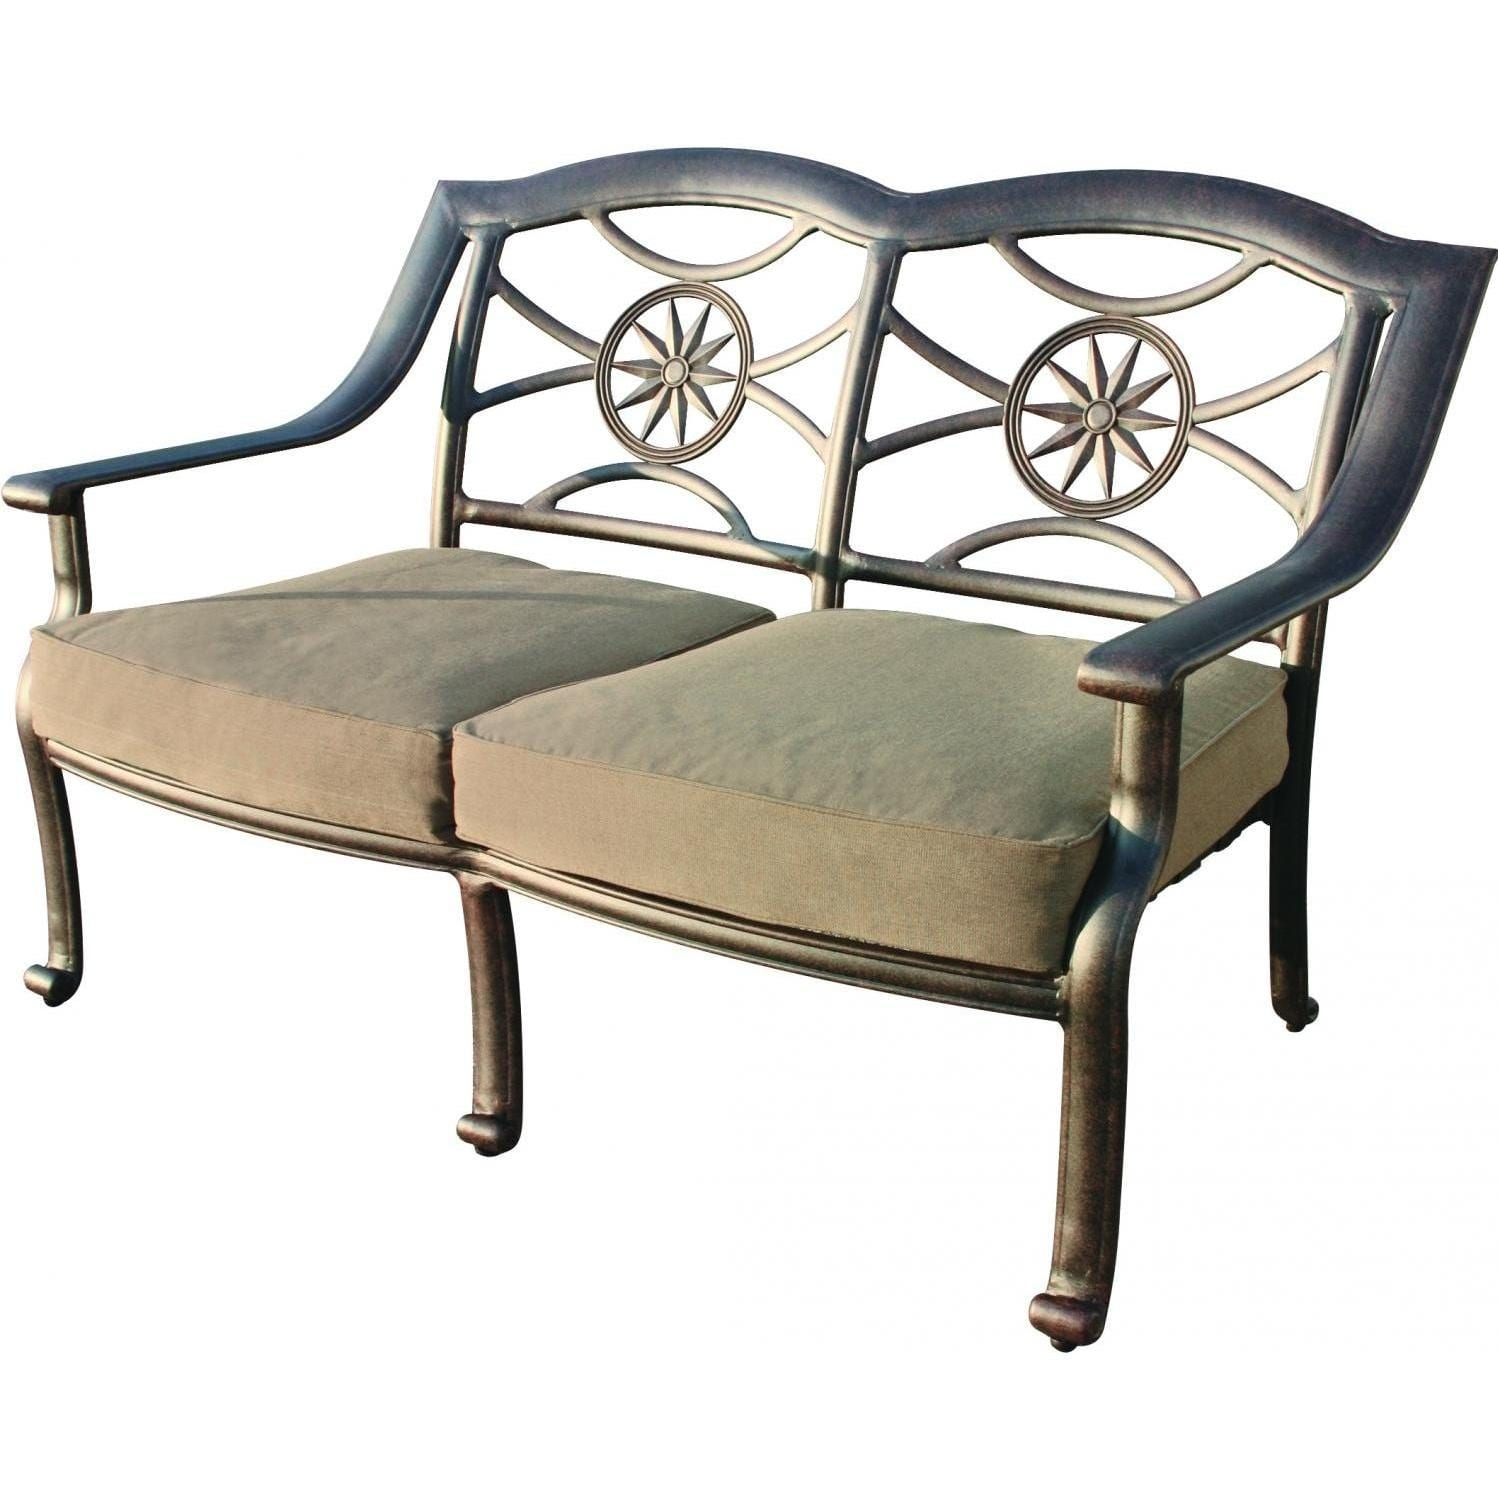 Darlee Ten Star Cast Aluminum Patio Loveseat